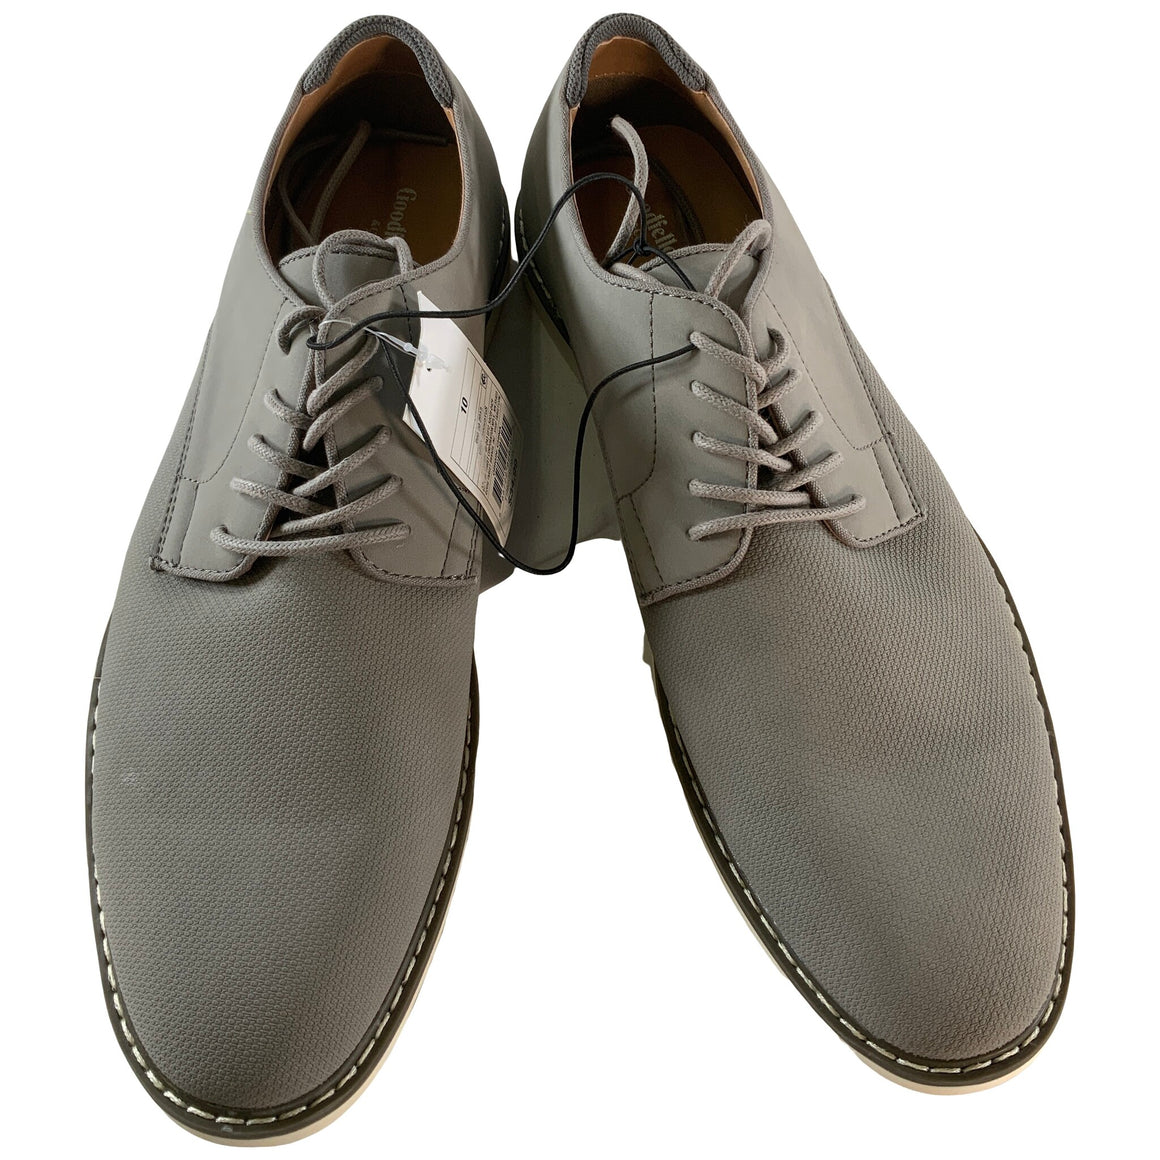 Augustus Casual Dress Shoe - Grey 10 - Goodfellow & Co™